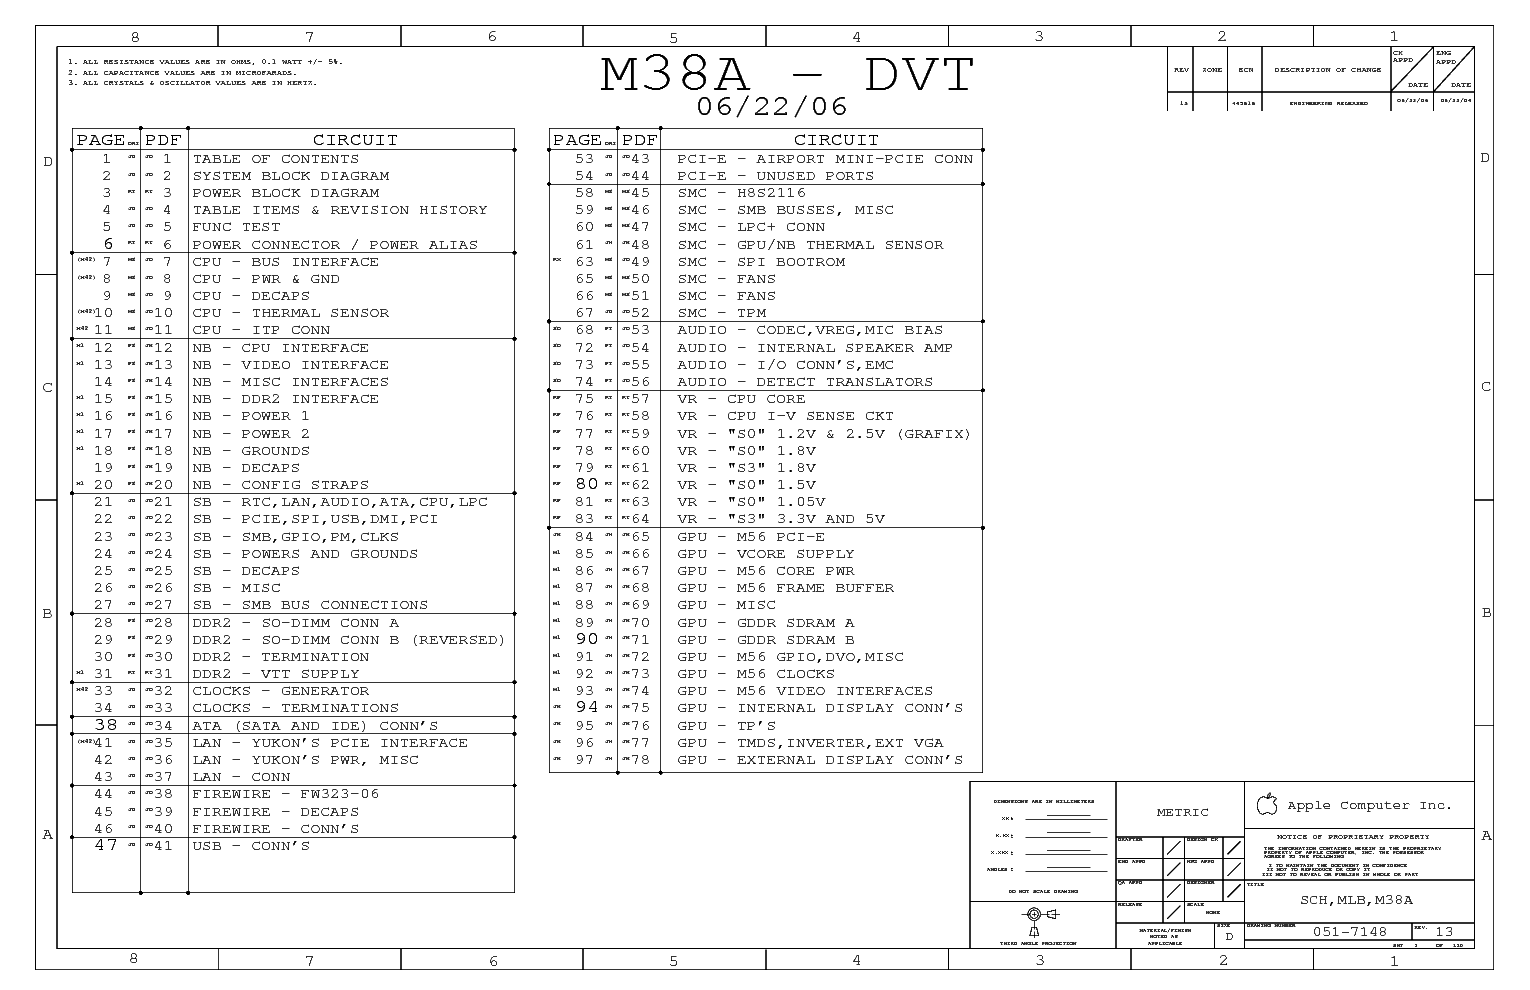 APPLE IIE COMPUTER-MODEL A2S2064 SM Service Manual download